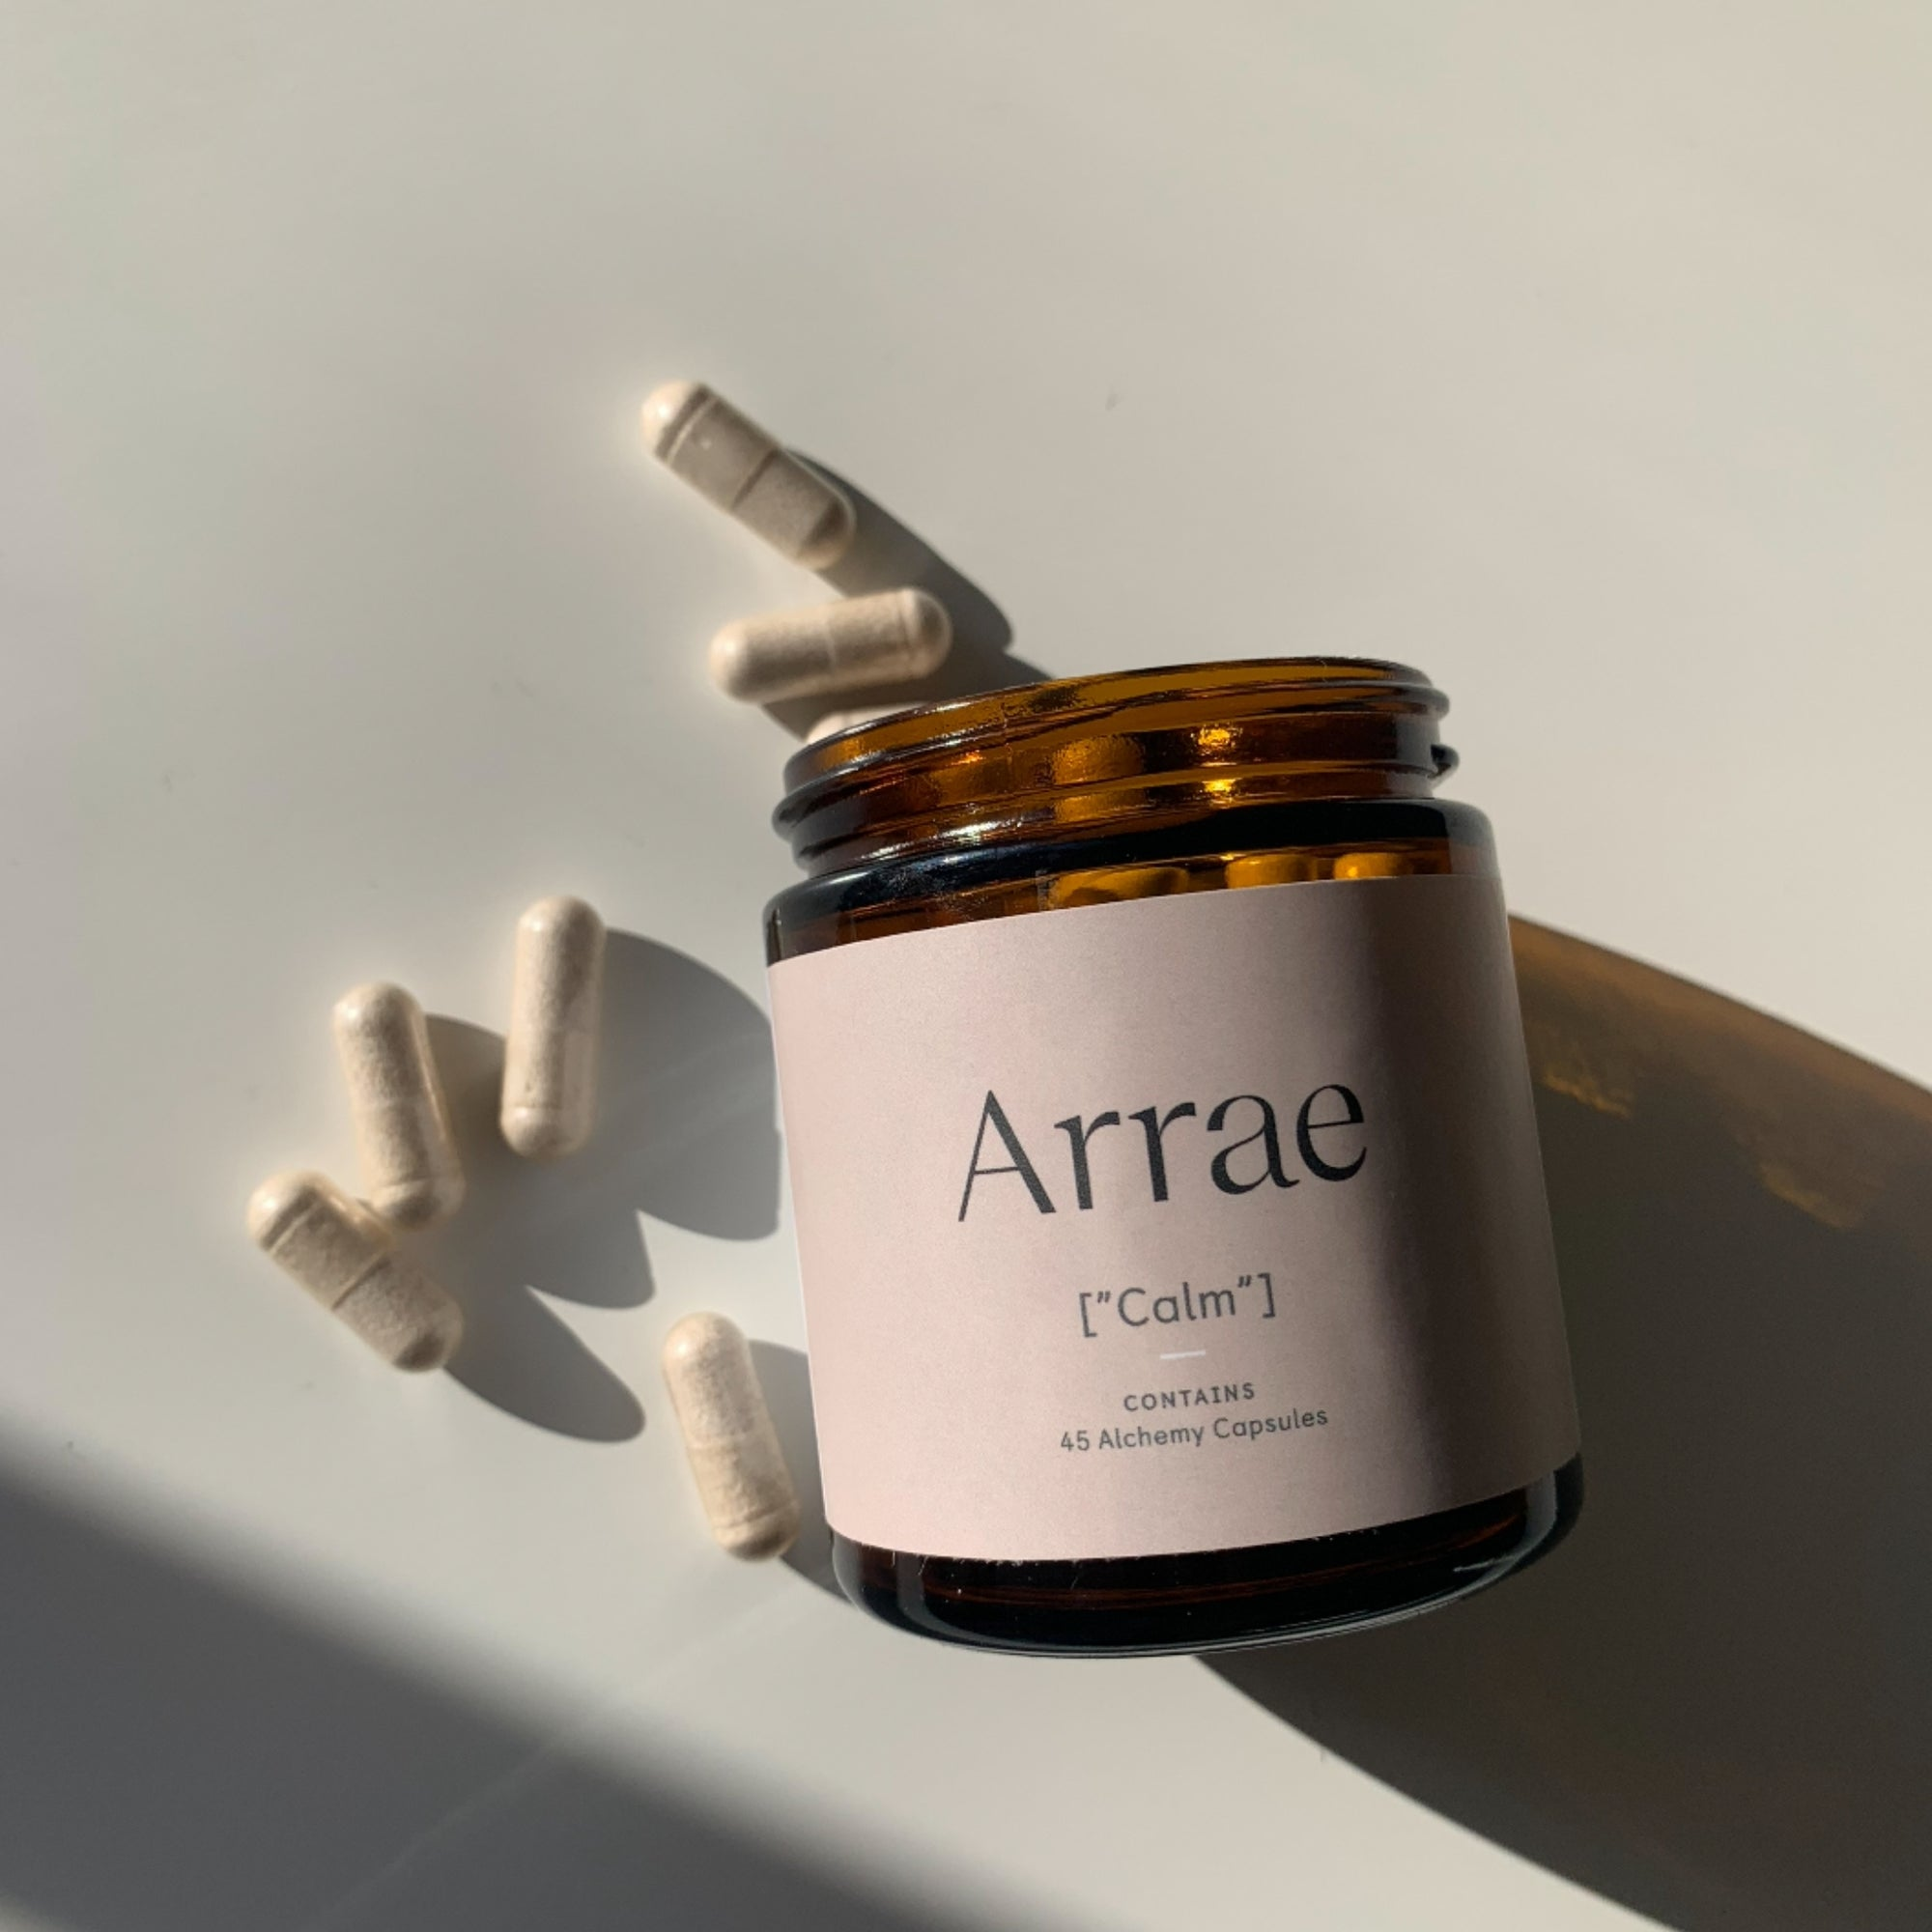 Calm by Arrae: An Effective Natural Anxiolytic